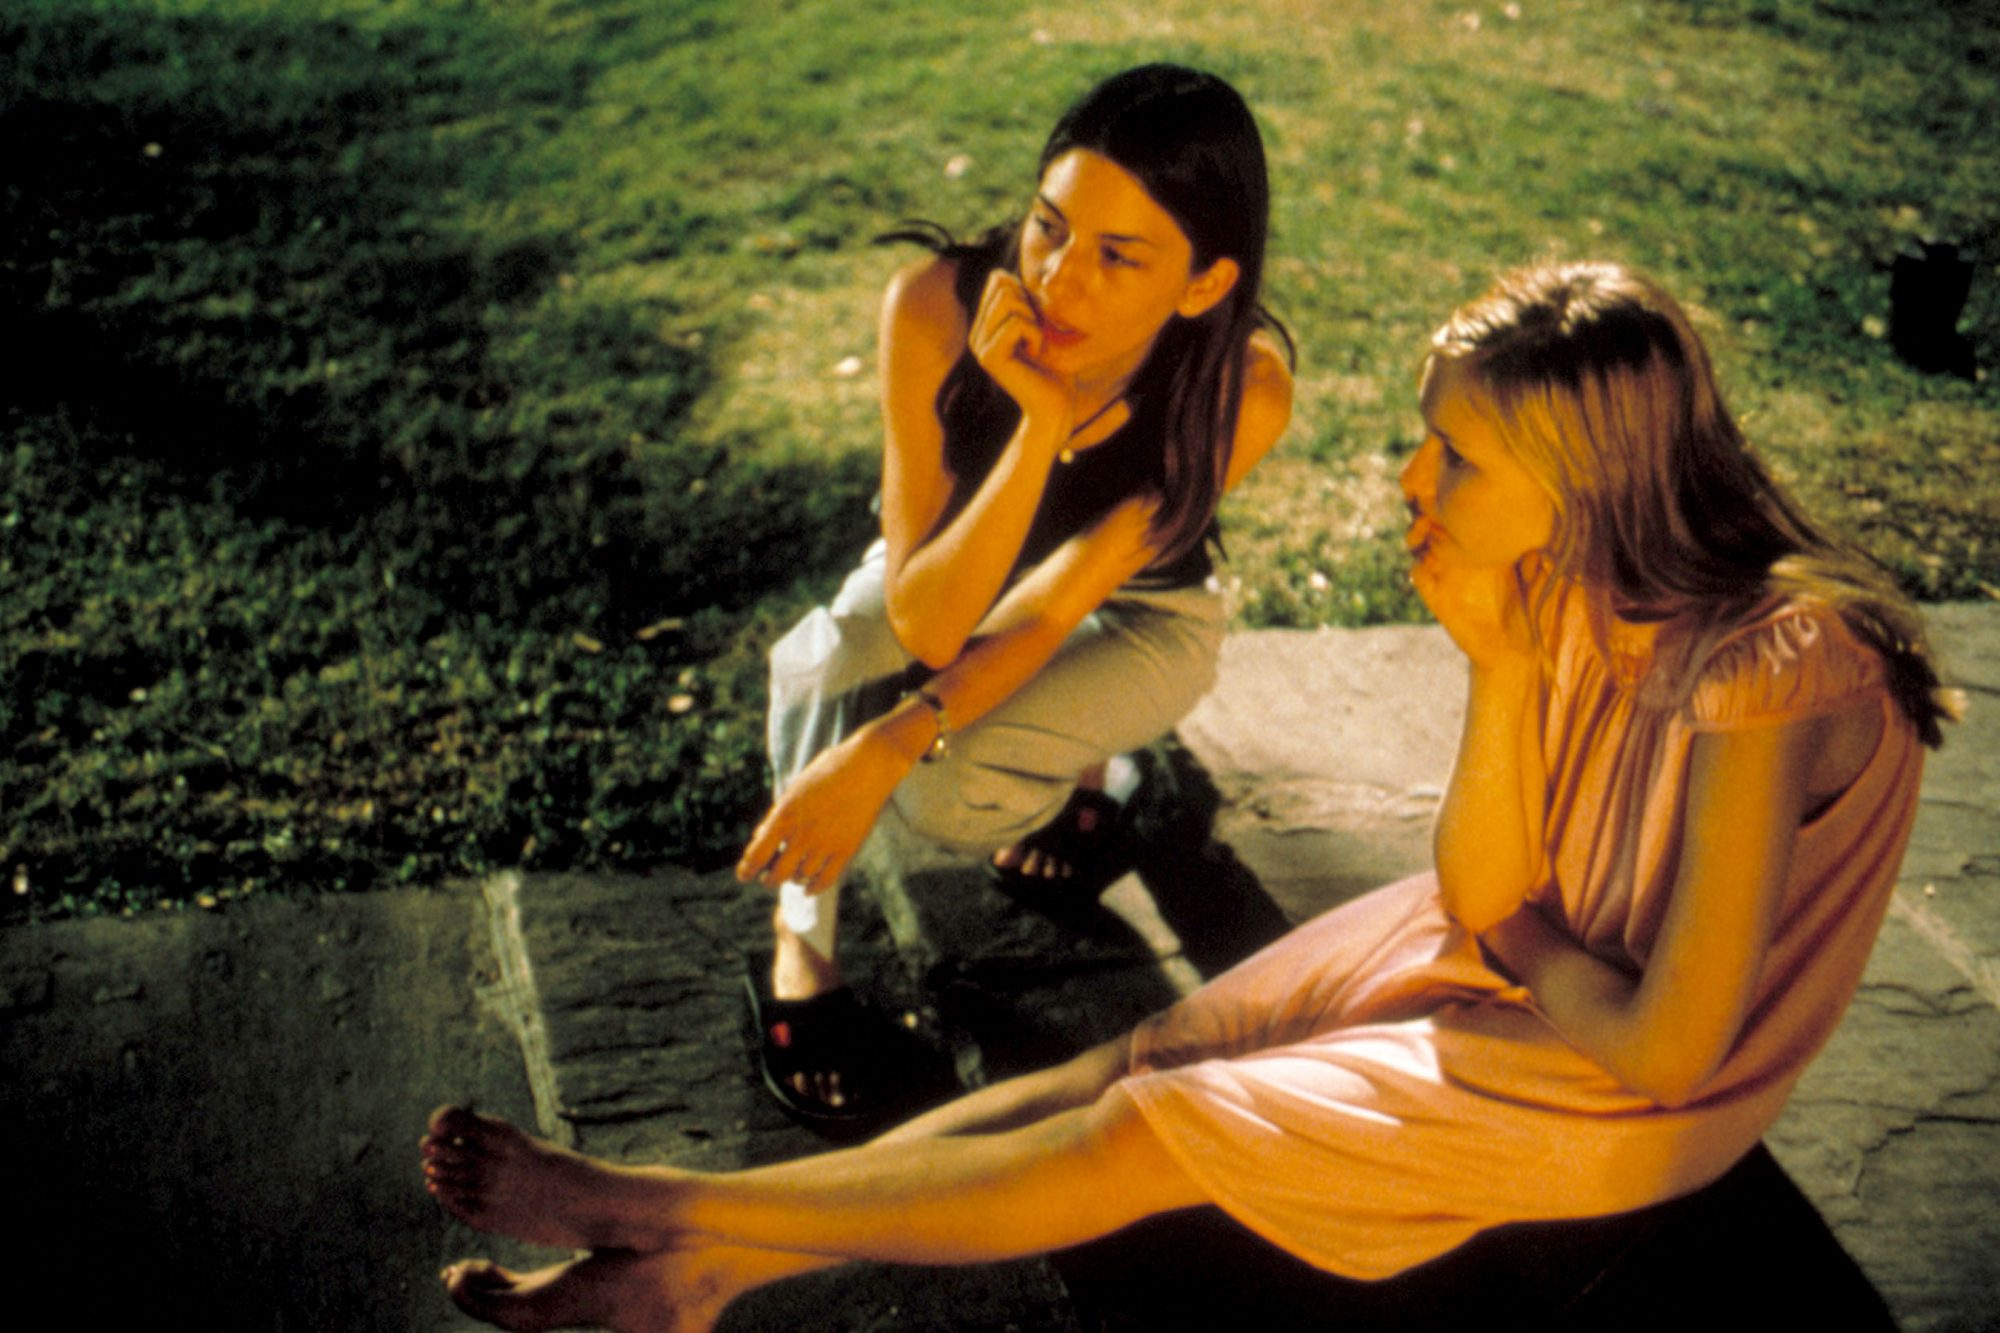 VIRGIN SUICIDES, Sofia Coppola directs Kirsten Dunst, 1999